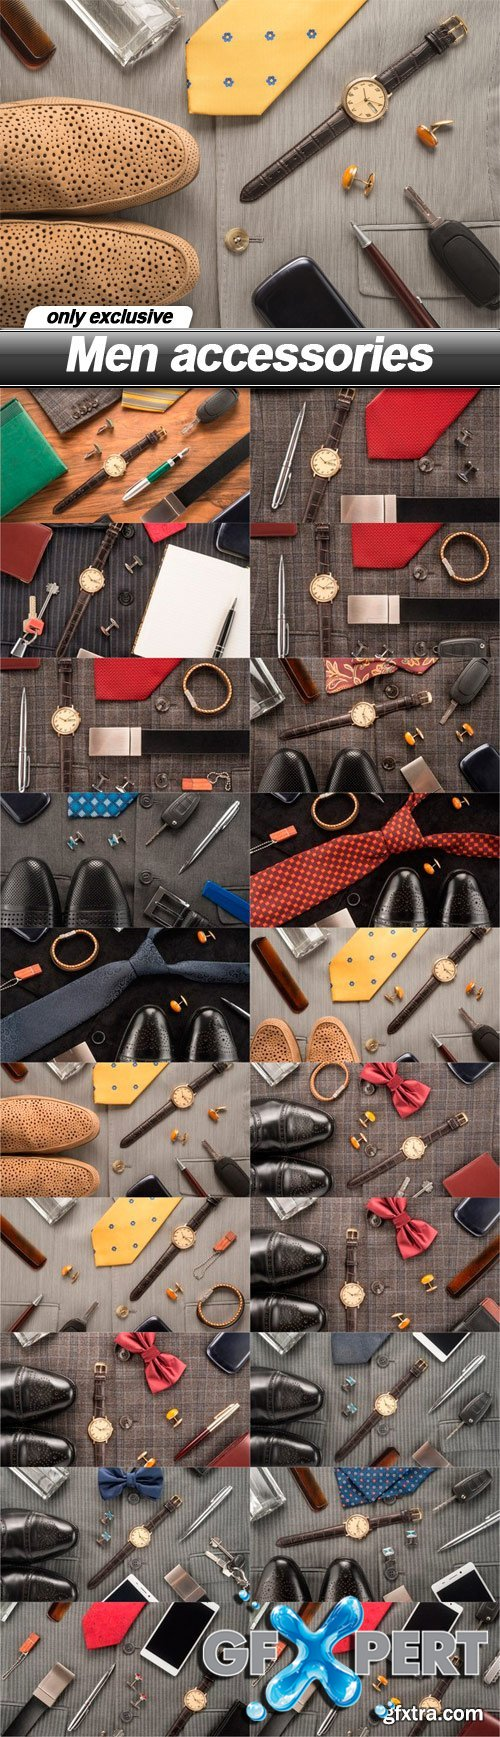 Men accessories - 20 UHQ JPEG